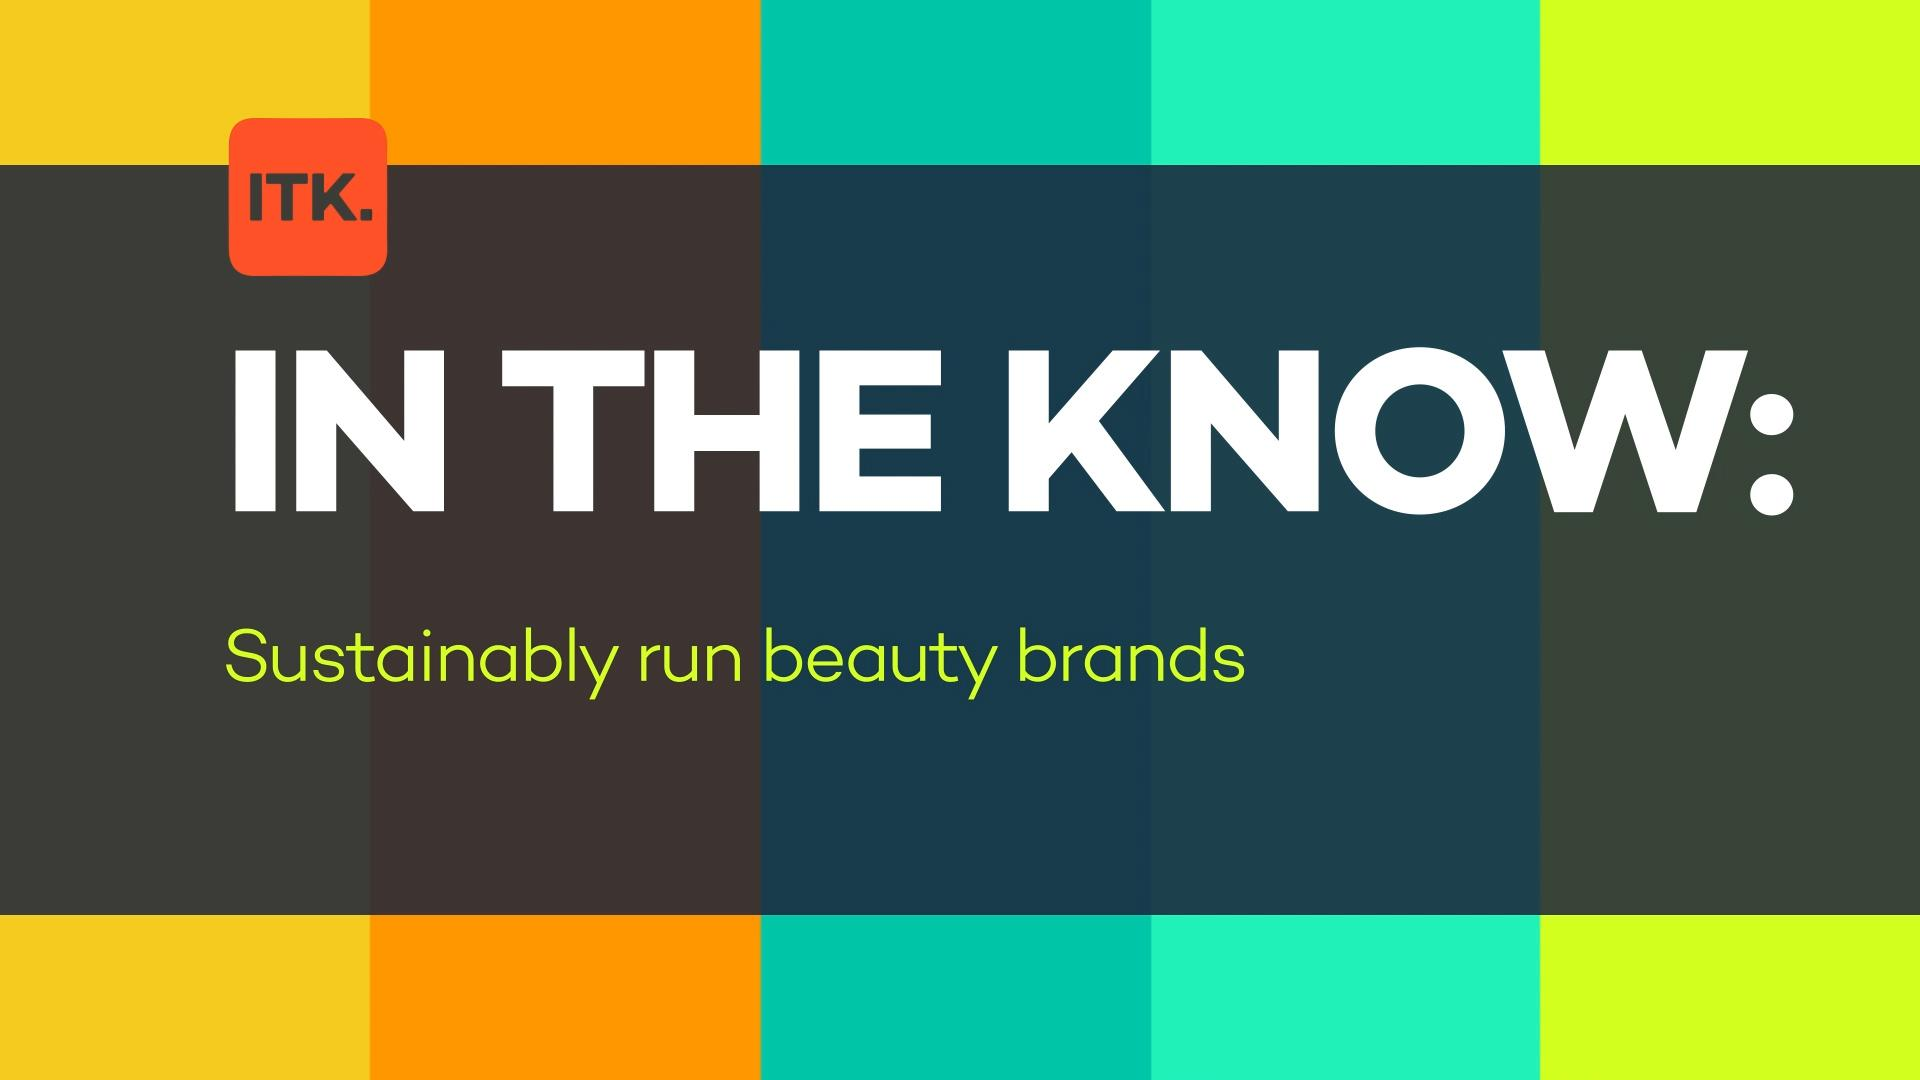 news.yahoo.com: These forward-thinking brands are bringing sustainable options to the beauty industry